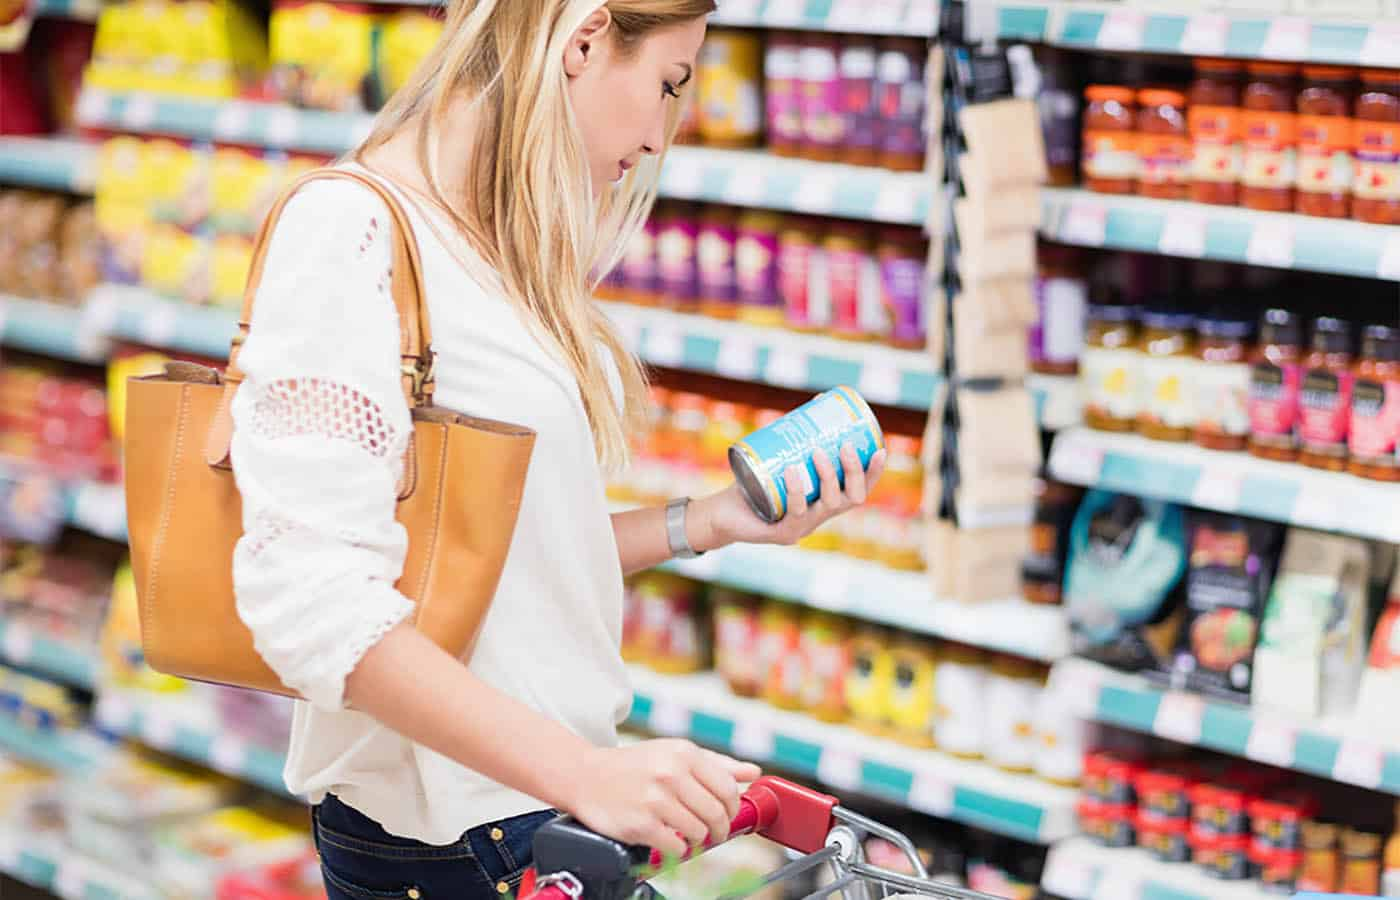 Woman carefully examining canned goods in grocery store